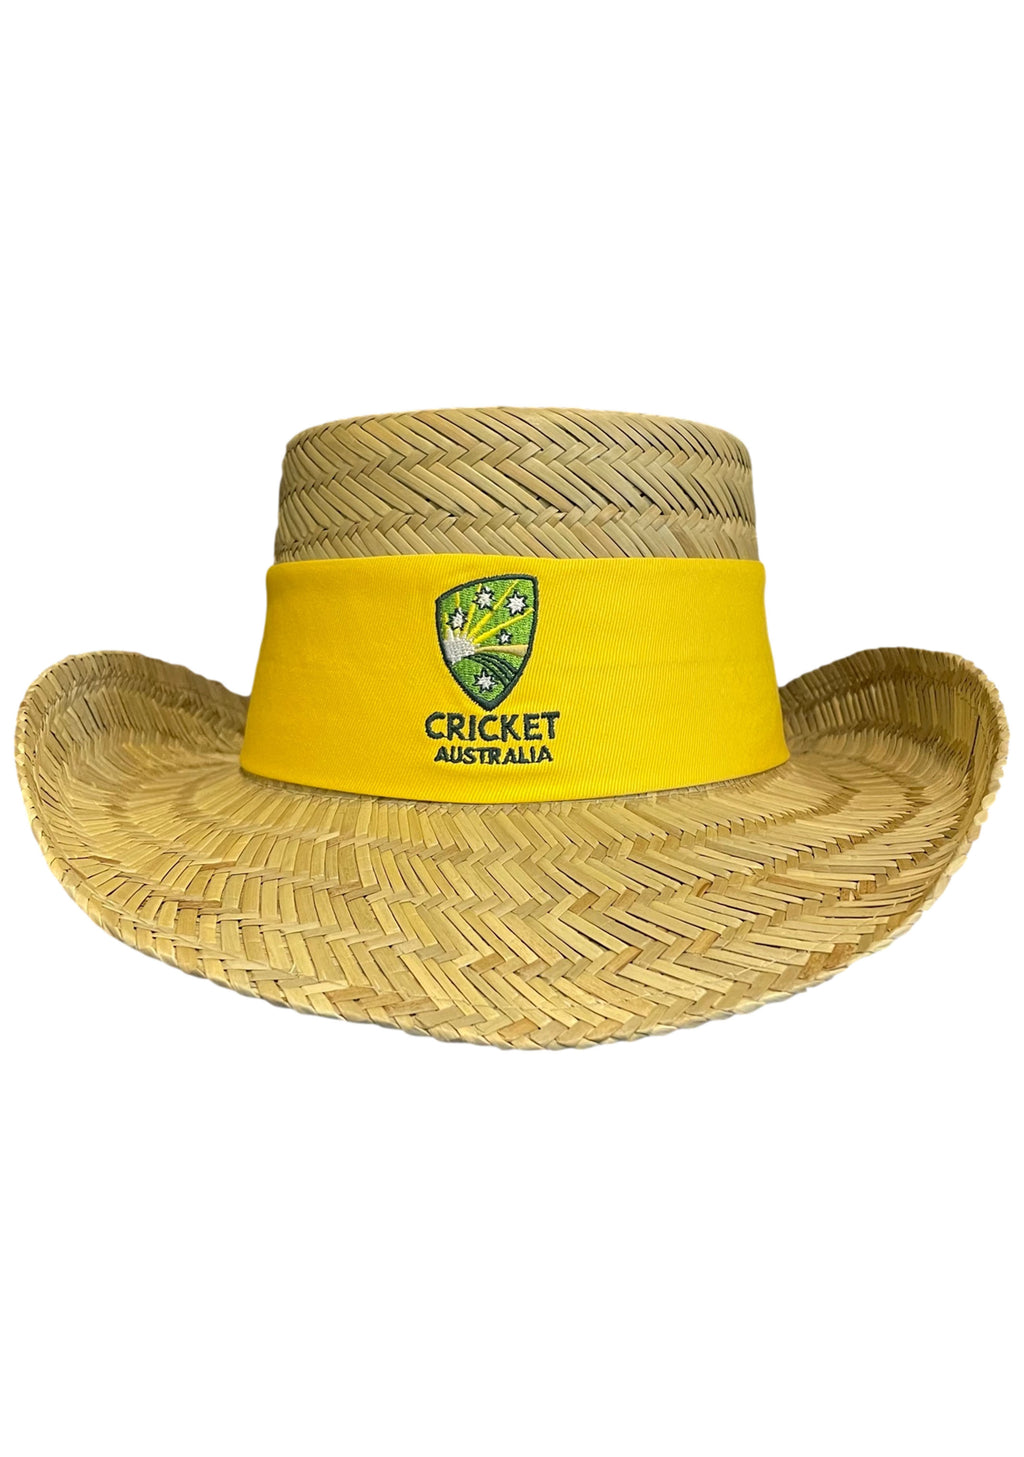 ASICS CRICKET CAS STRAW HAT <BR> CSSH1517 1002